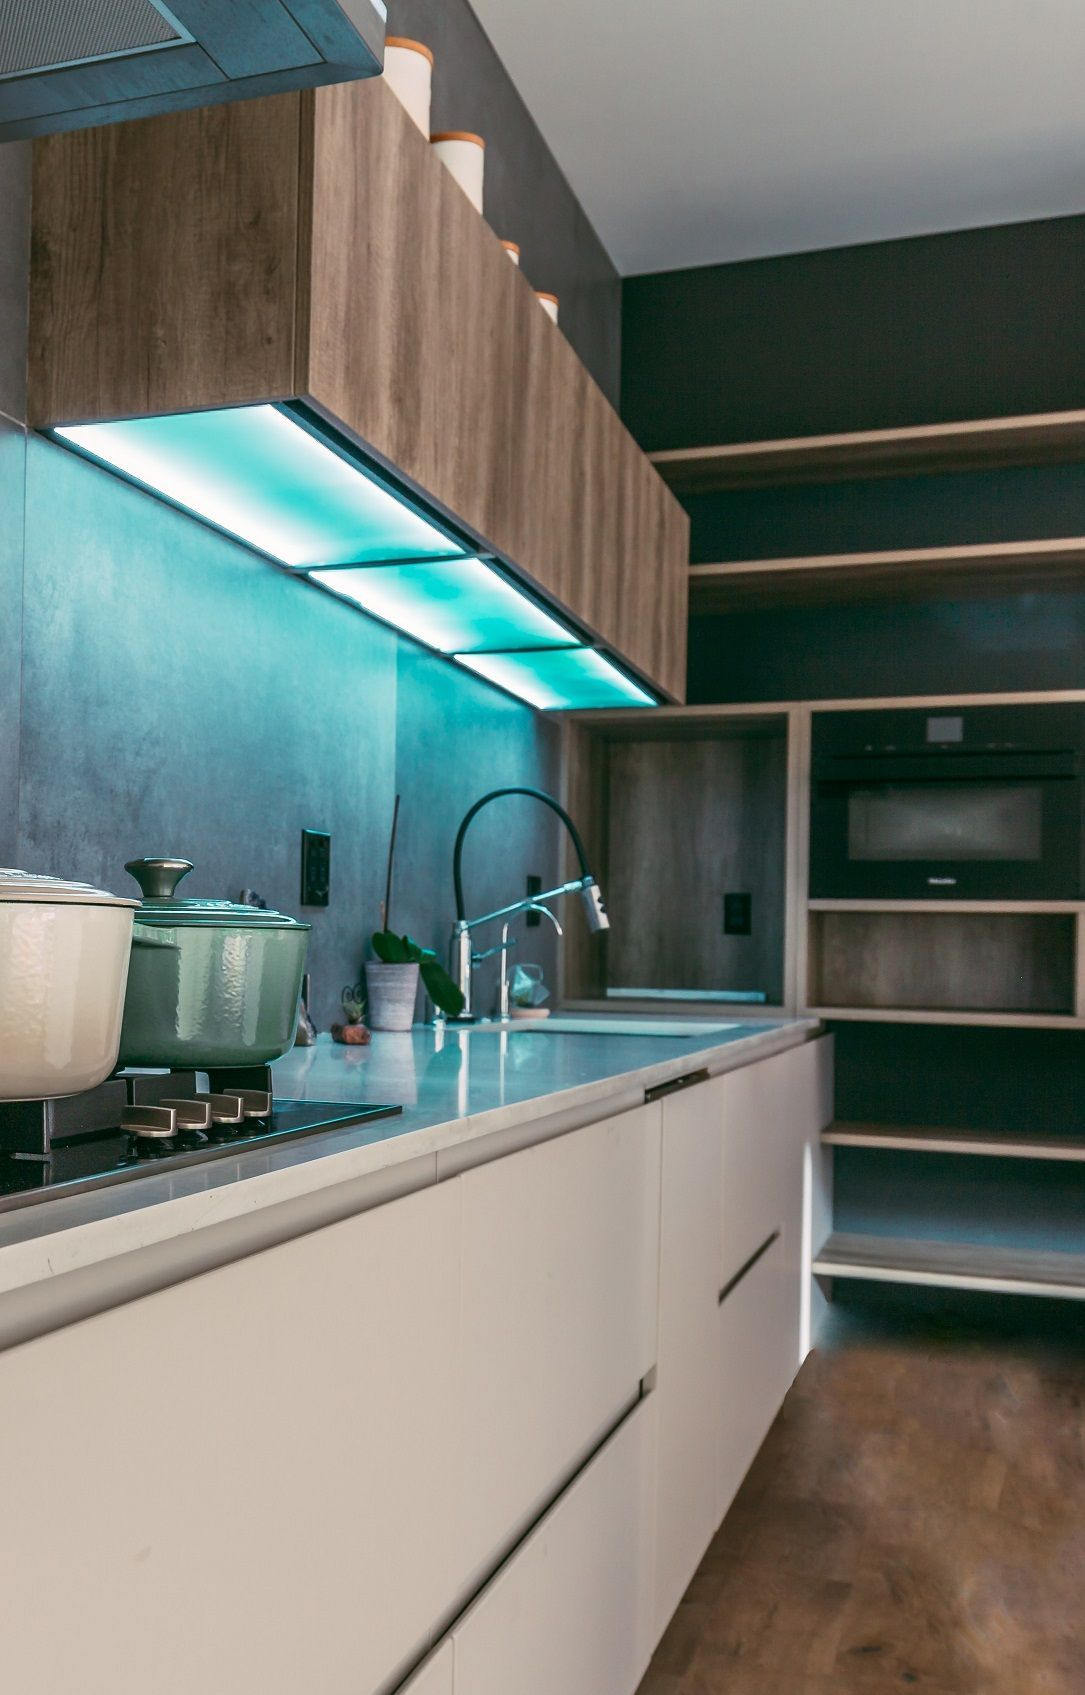 What Are the Key Points to Consider for Any Kitchen Design